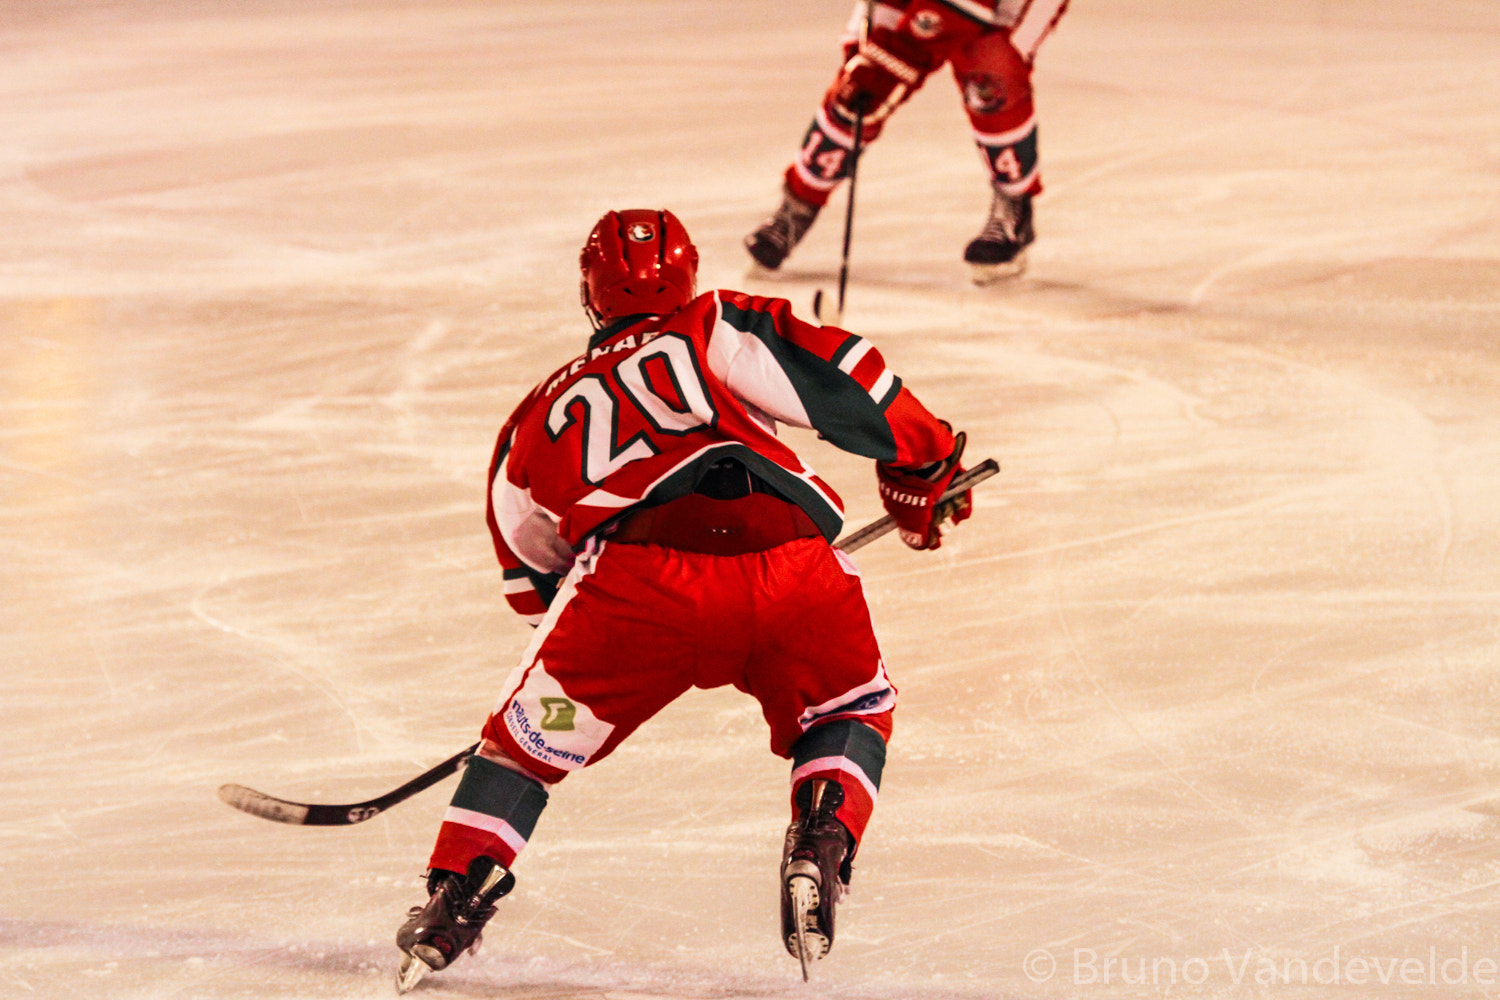 Photograph Courbevoie hockey sur glace by Bruno Vandevelde on 500px